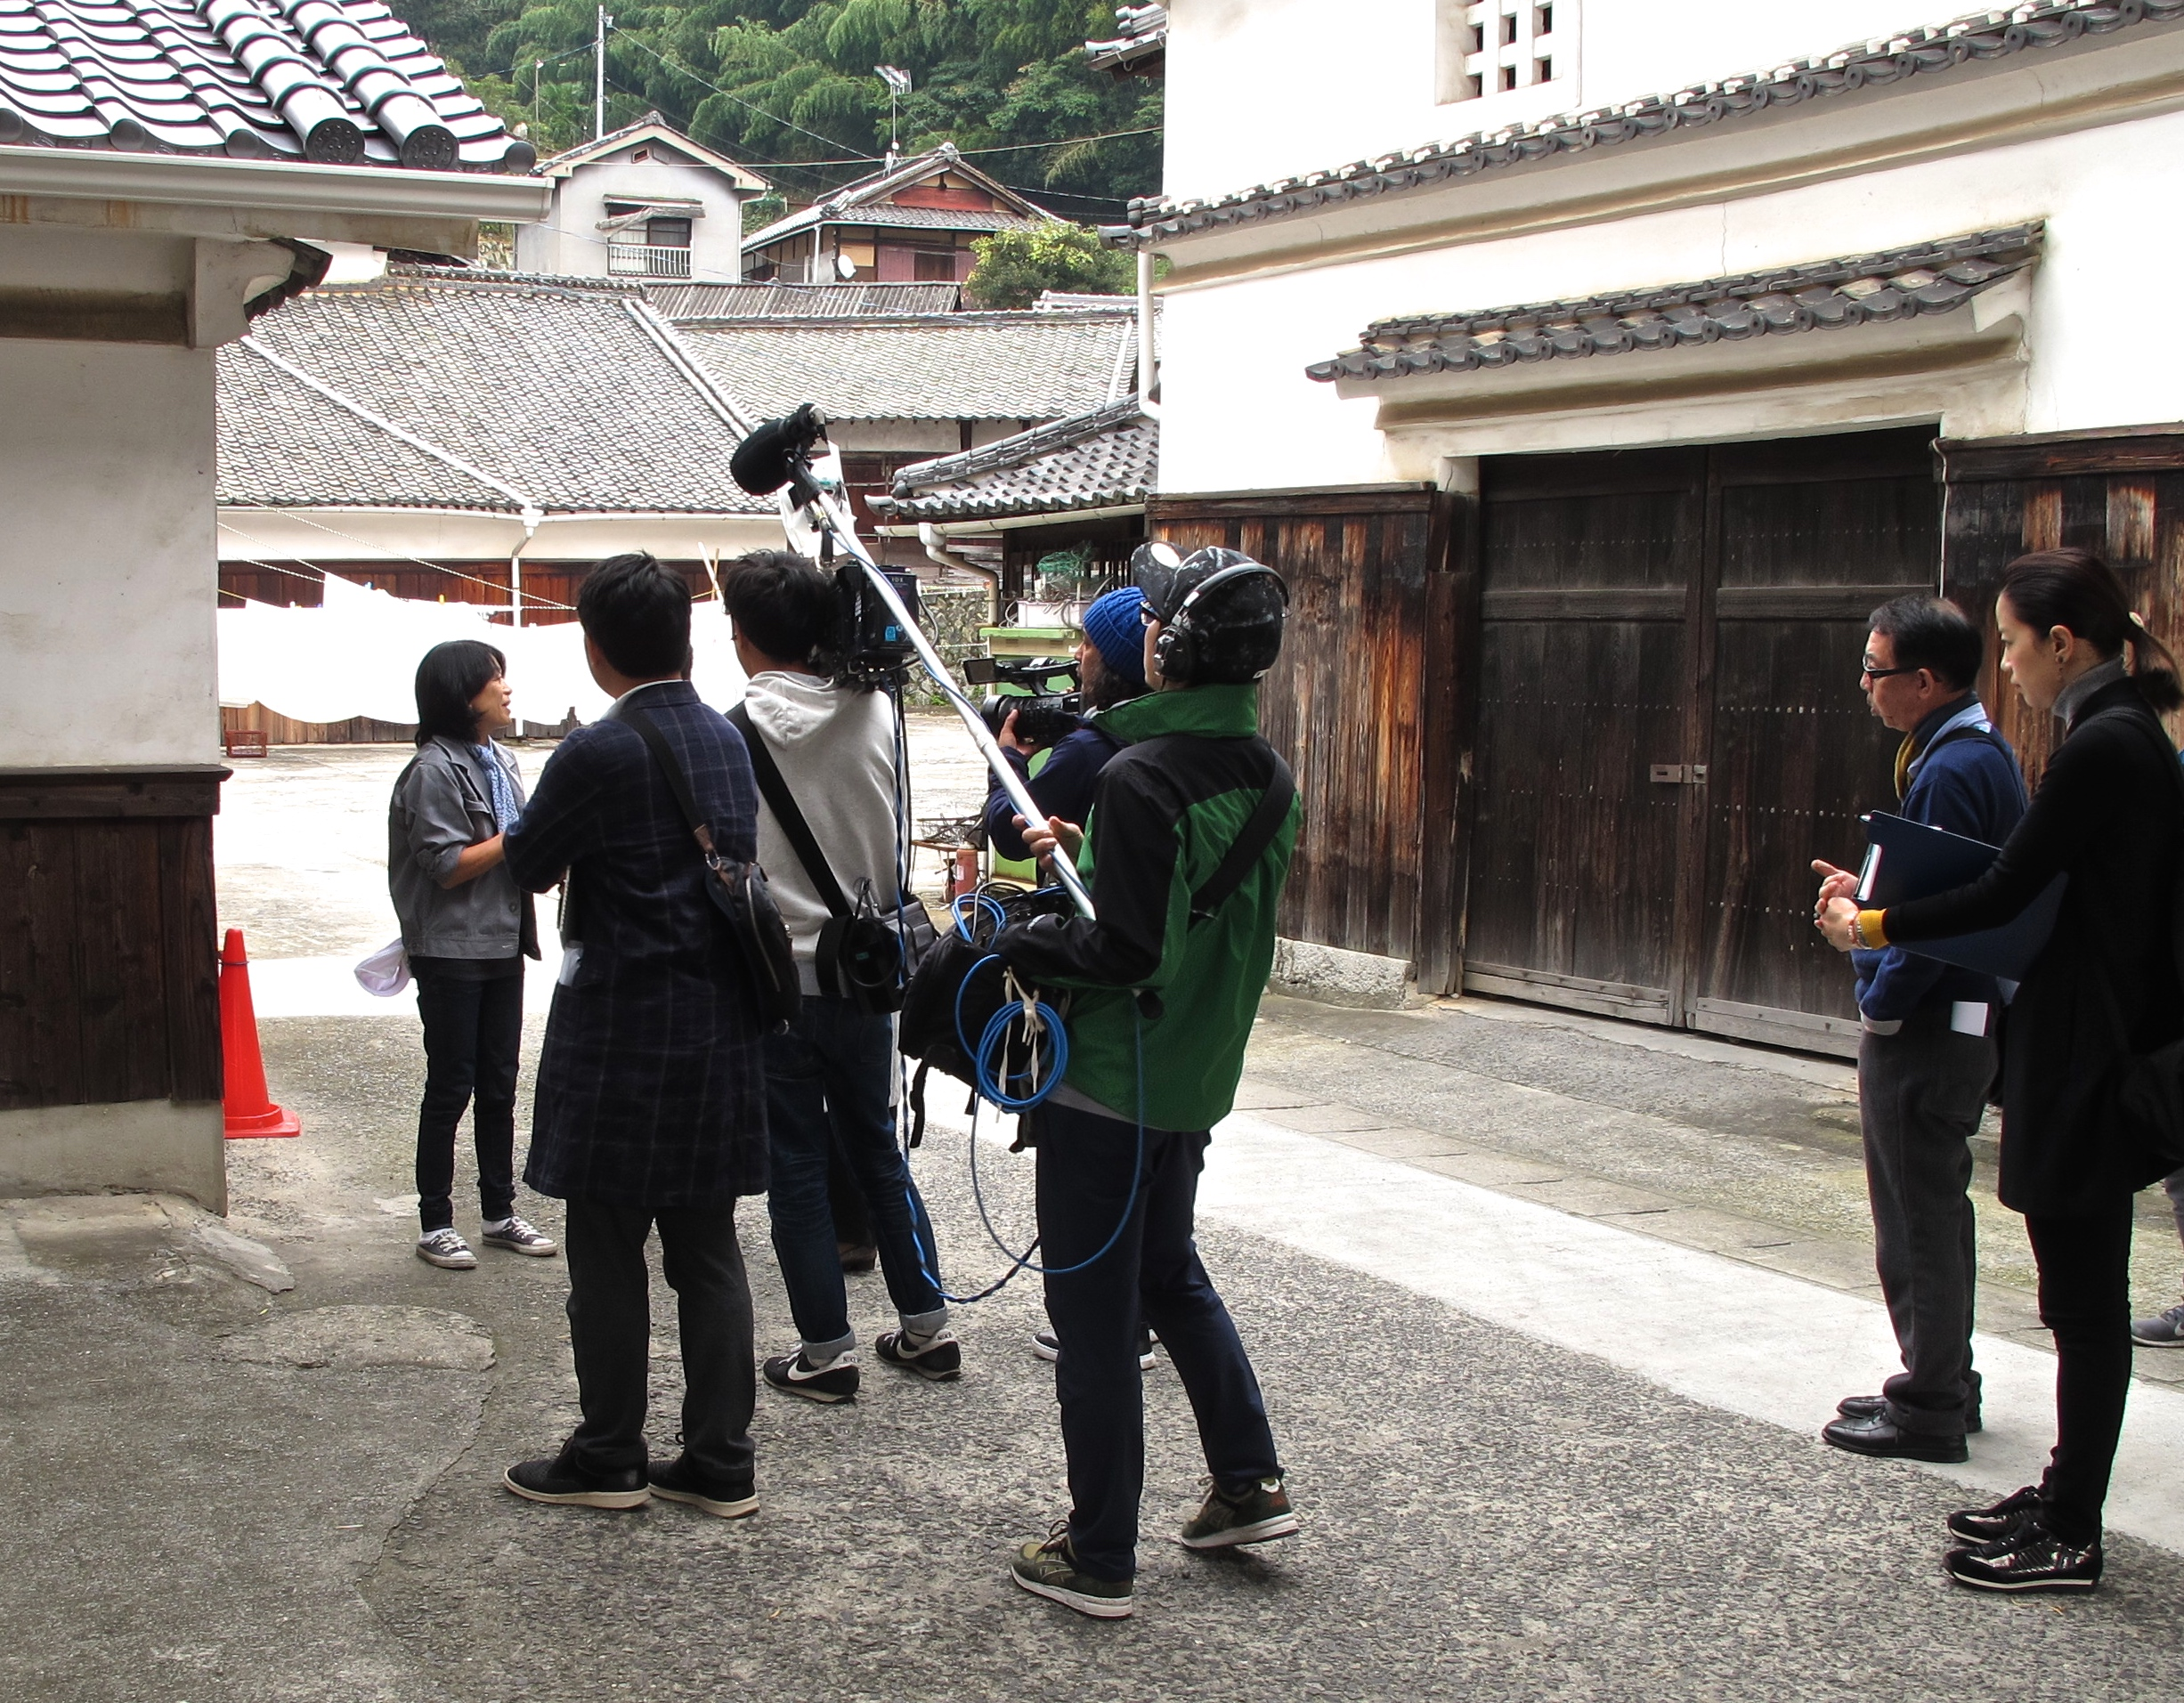 """Miho is often featured in documentaries like the one being filmed here by NHK, Japan's public broadcasting station, about innovative artisanal food makers in the Seto Inland Sea area. She was also in the 2018 documentary film """"Kampai! Sake Sisters."""""""